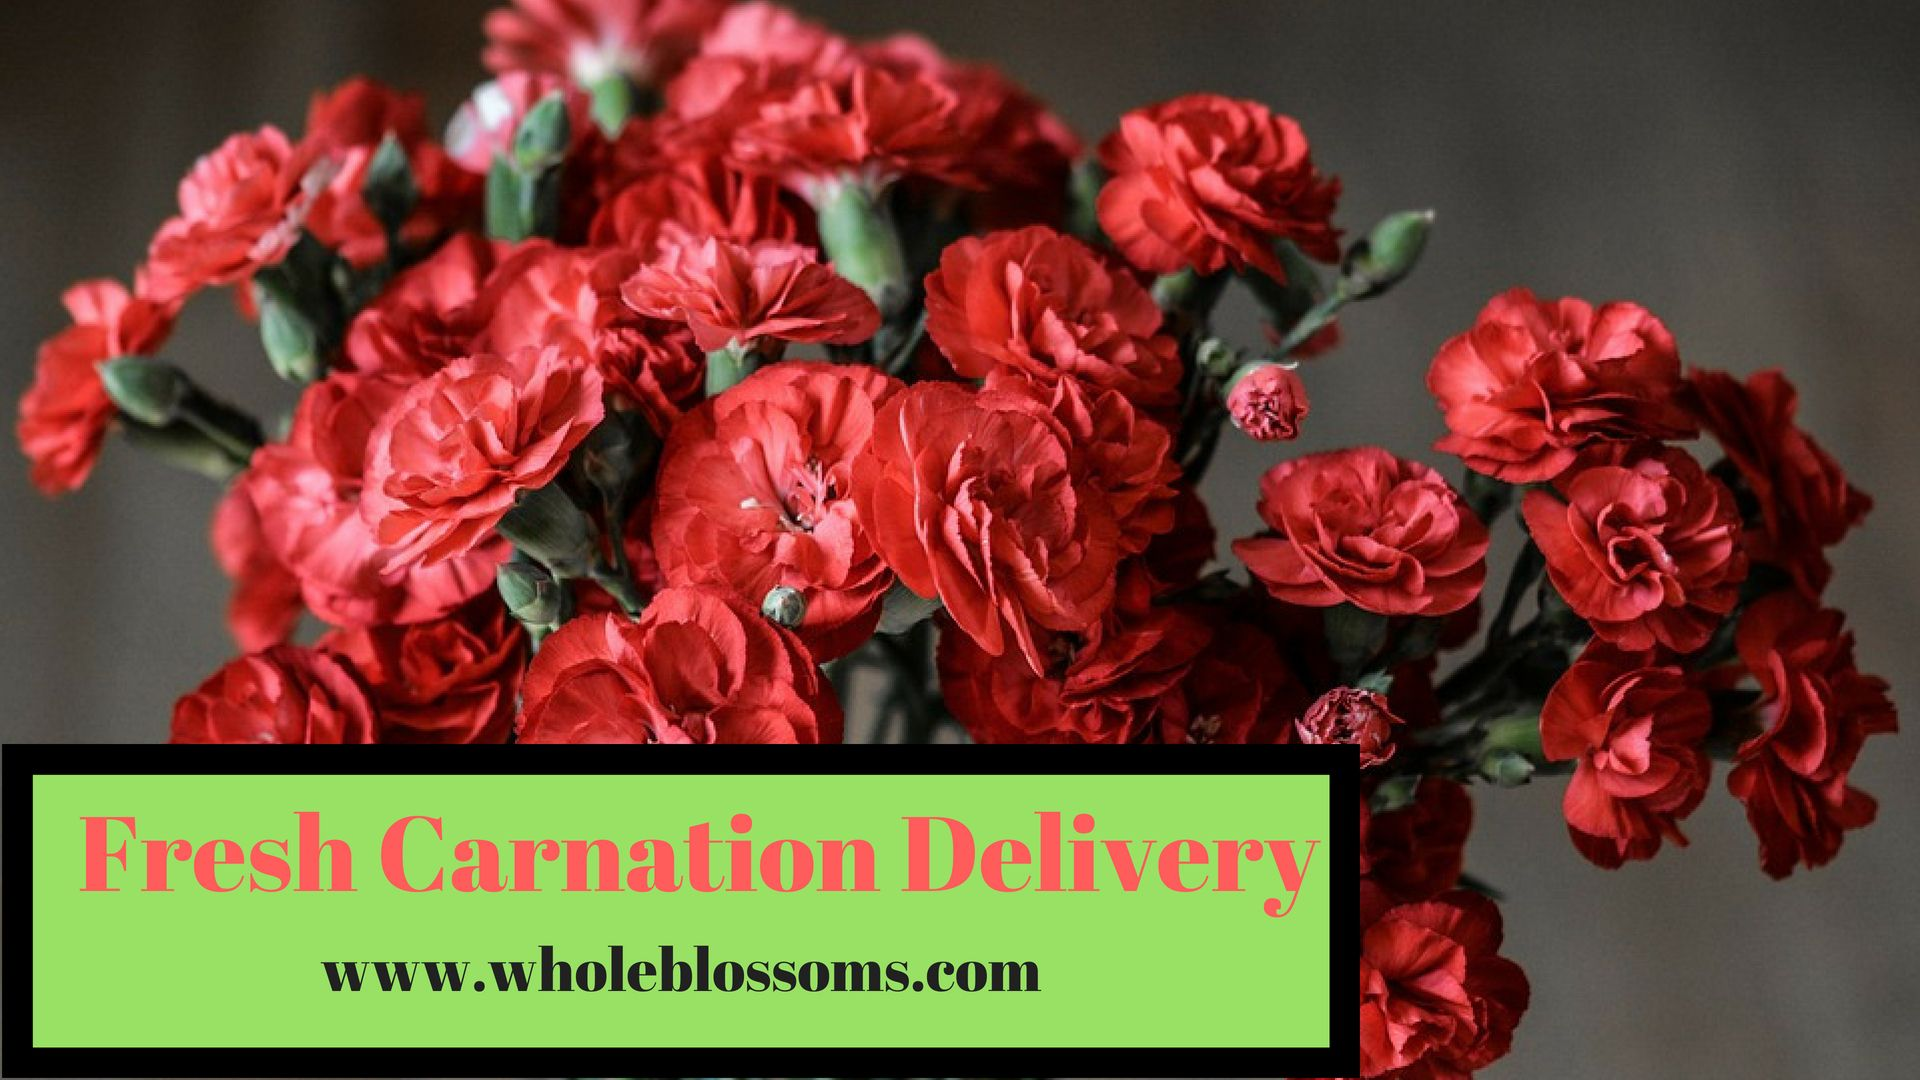 Carnations Express The Sentiment Of Love And Relation Carnation Are A Popular Choice For Flower Arrangement Flowers Home Improvement Home Improvement Projects